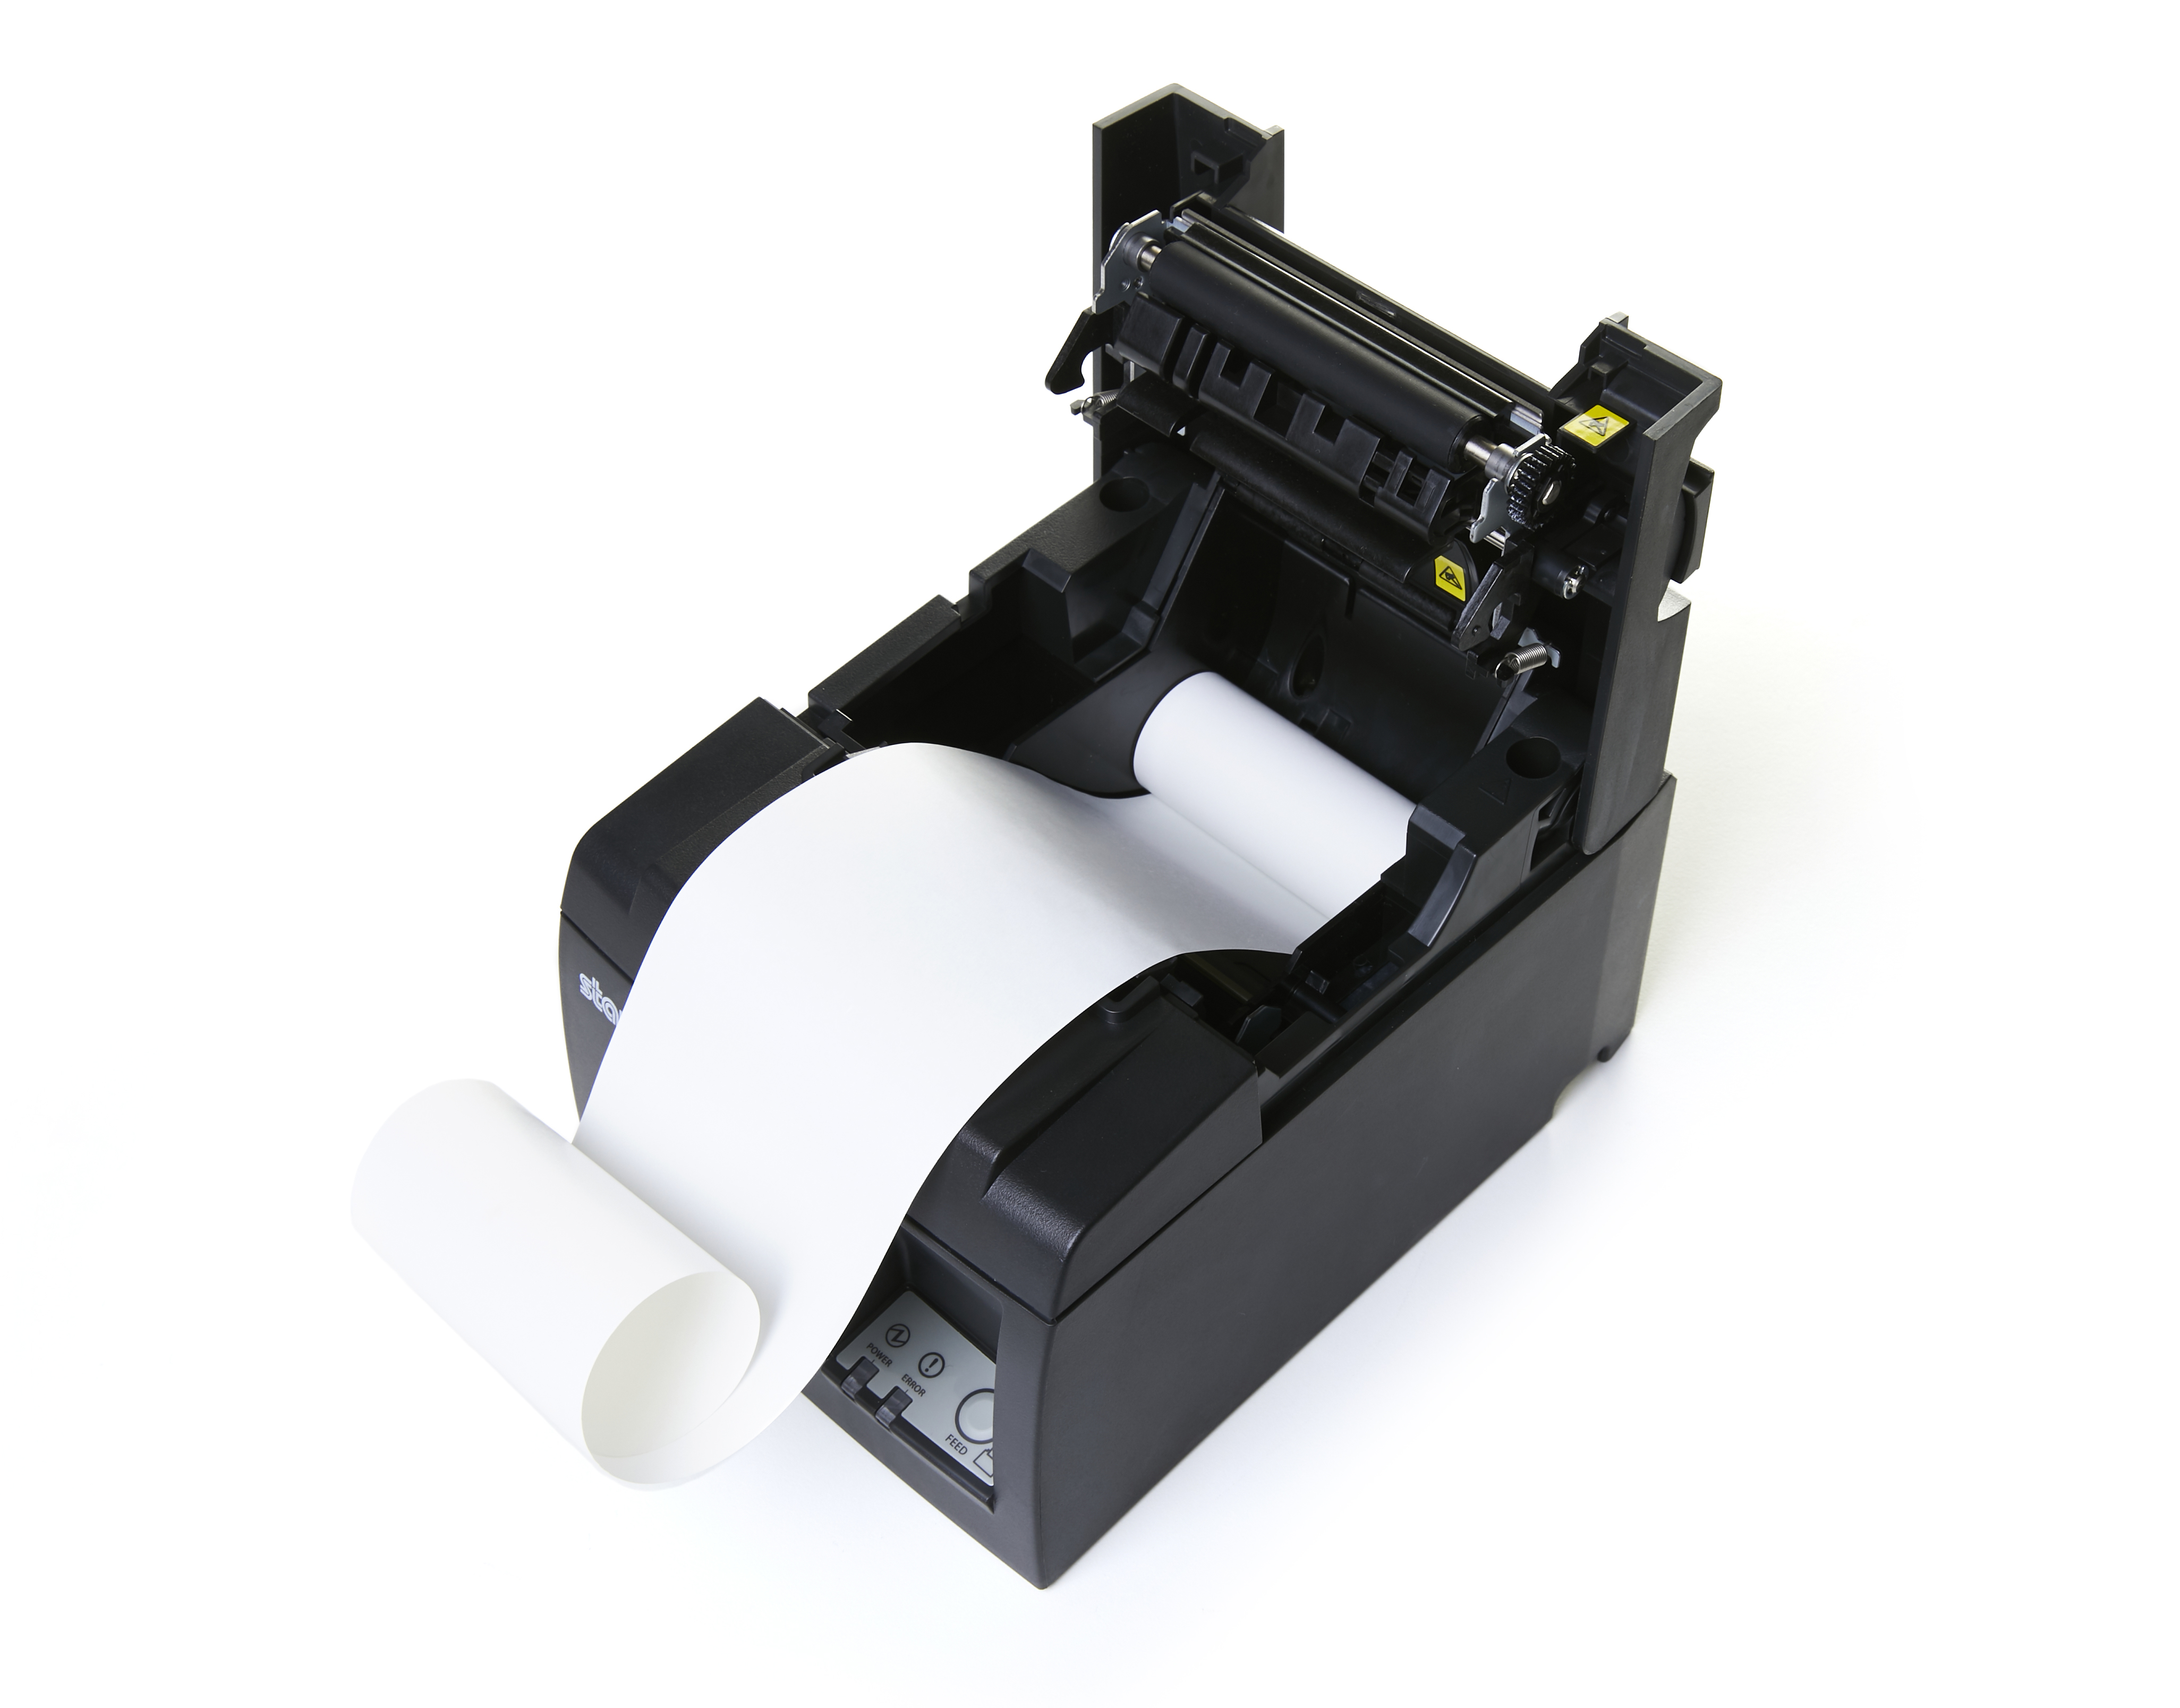 Product_2019_1946_Printer_WithPaper__1_.jpg